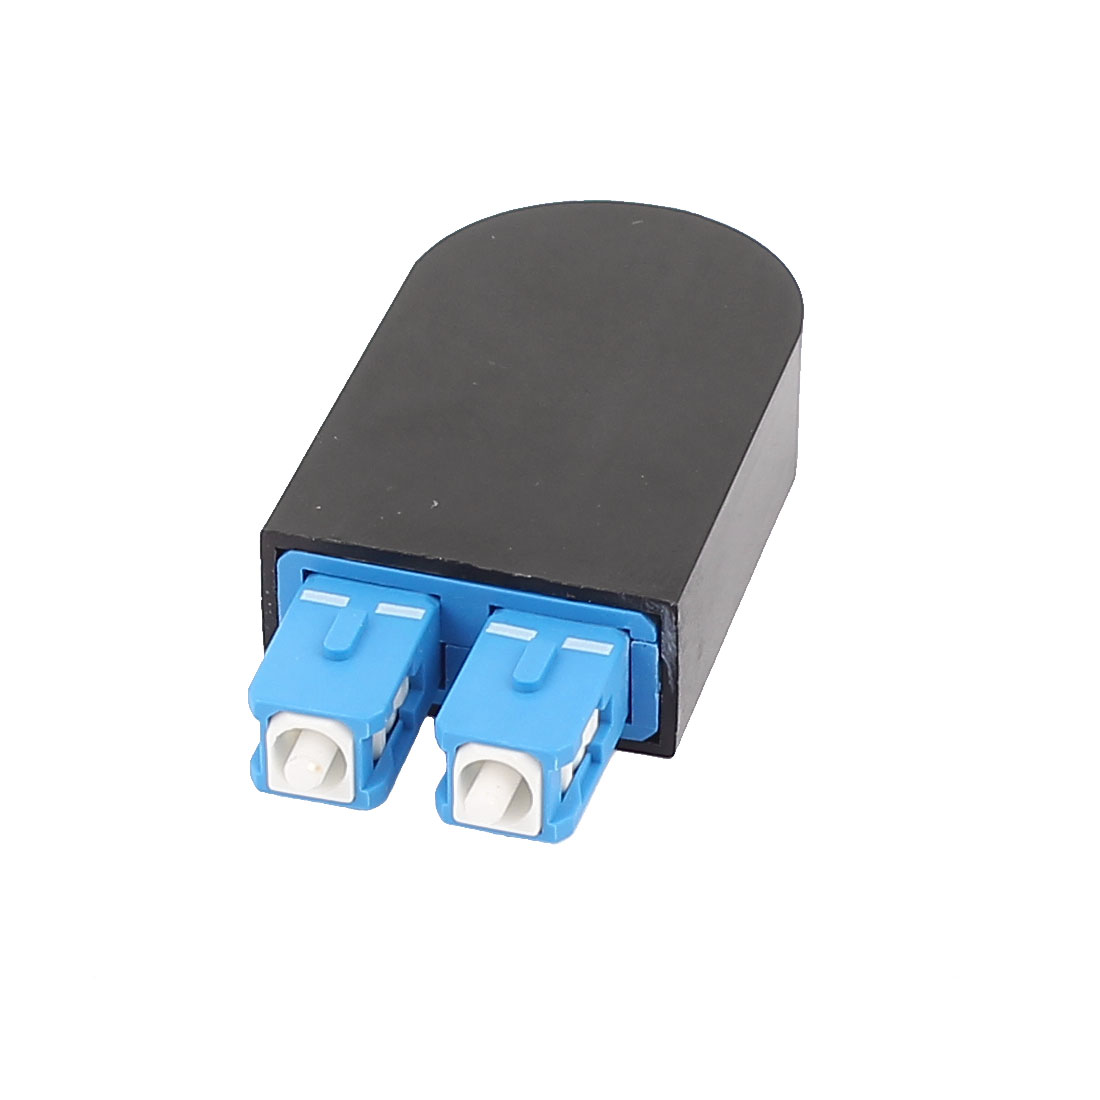 SC Single-mode Multimode Fiber Optic Cable Cord Lookback Adapter